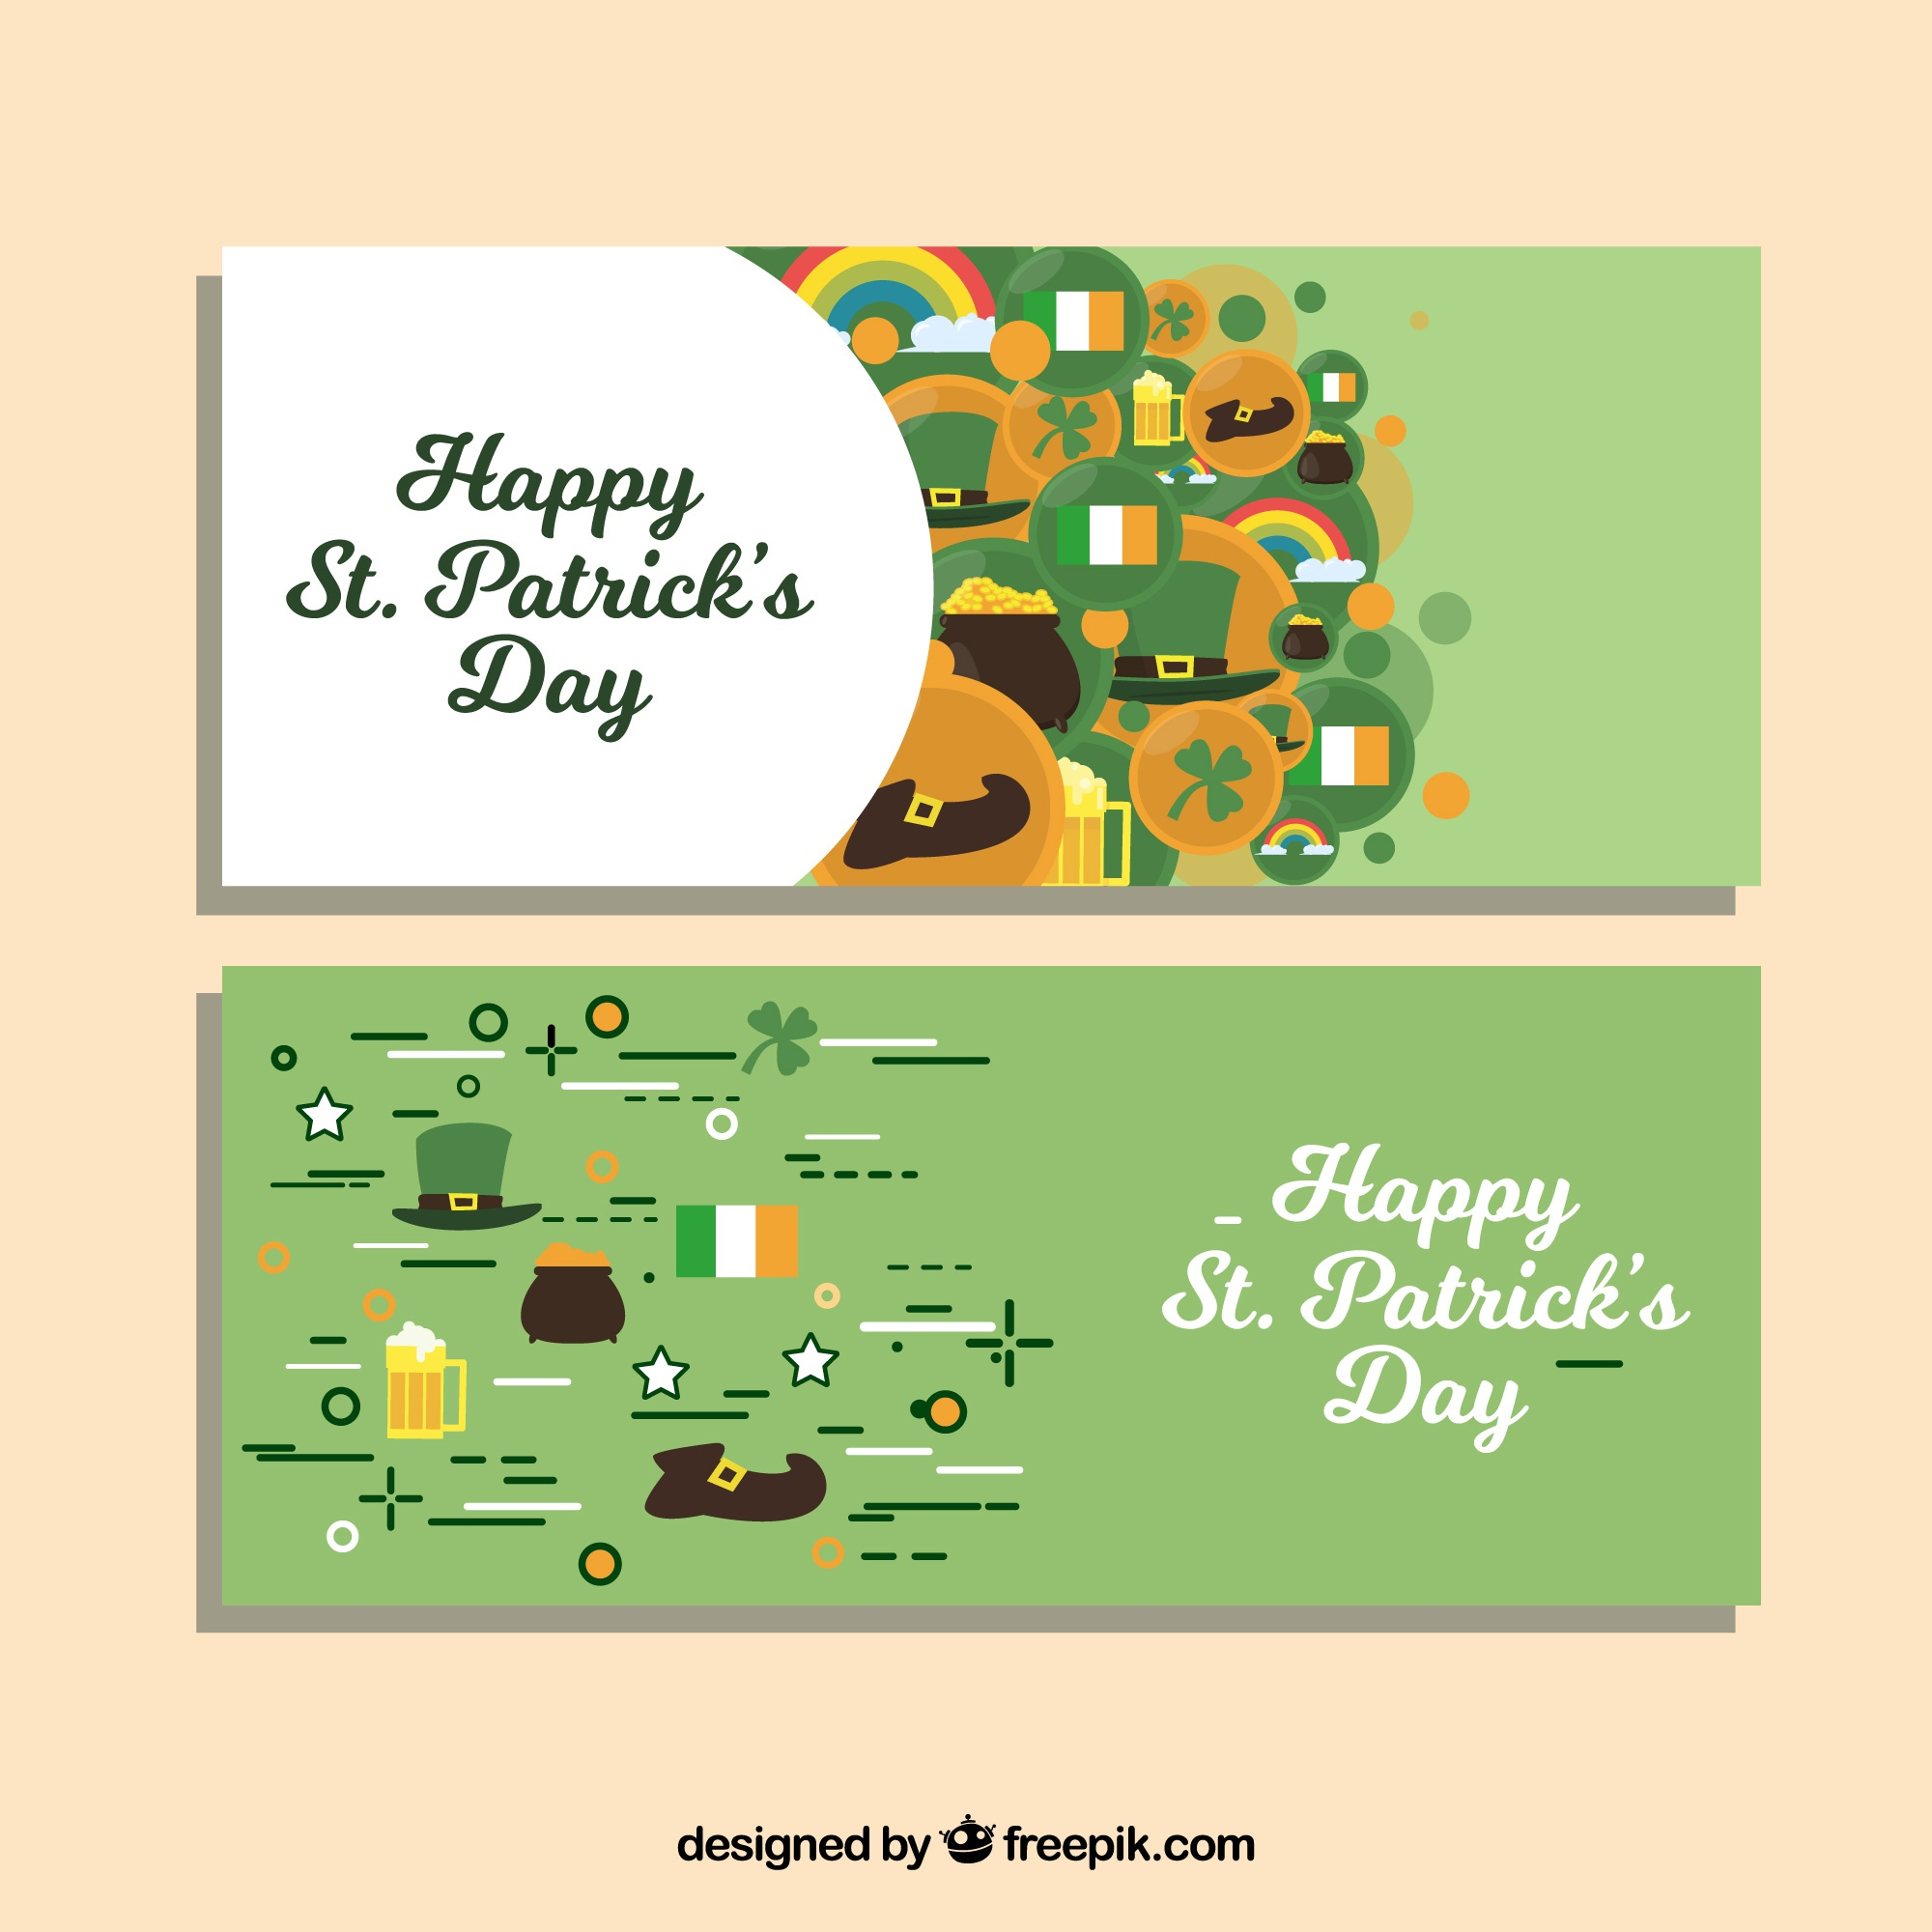 Happy st. patrick's day banners in flat design